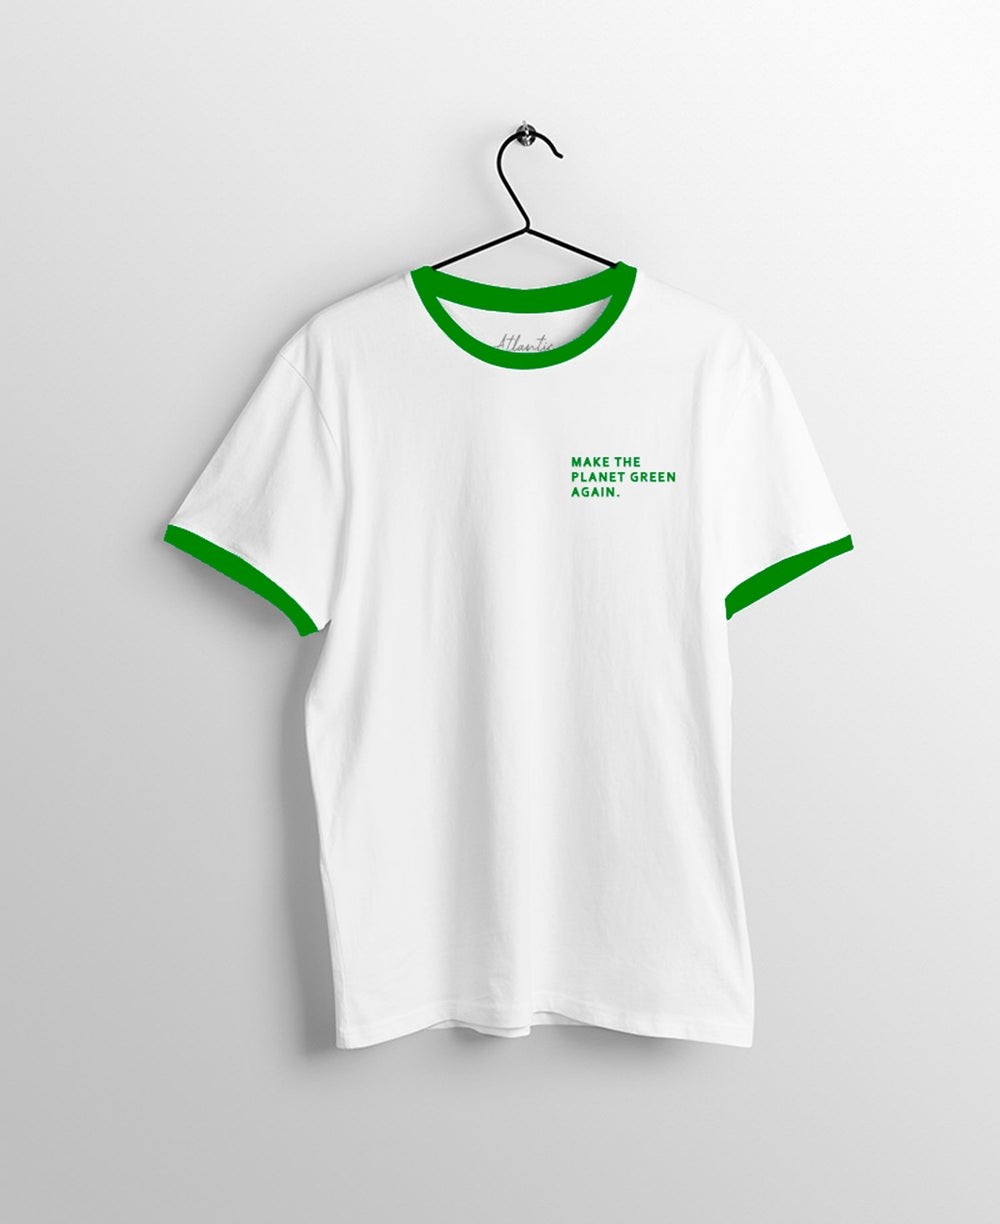 Make the planet green again T-Shirt